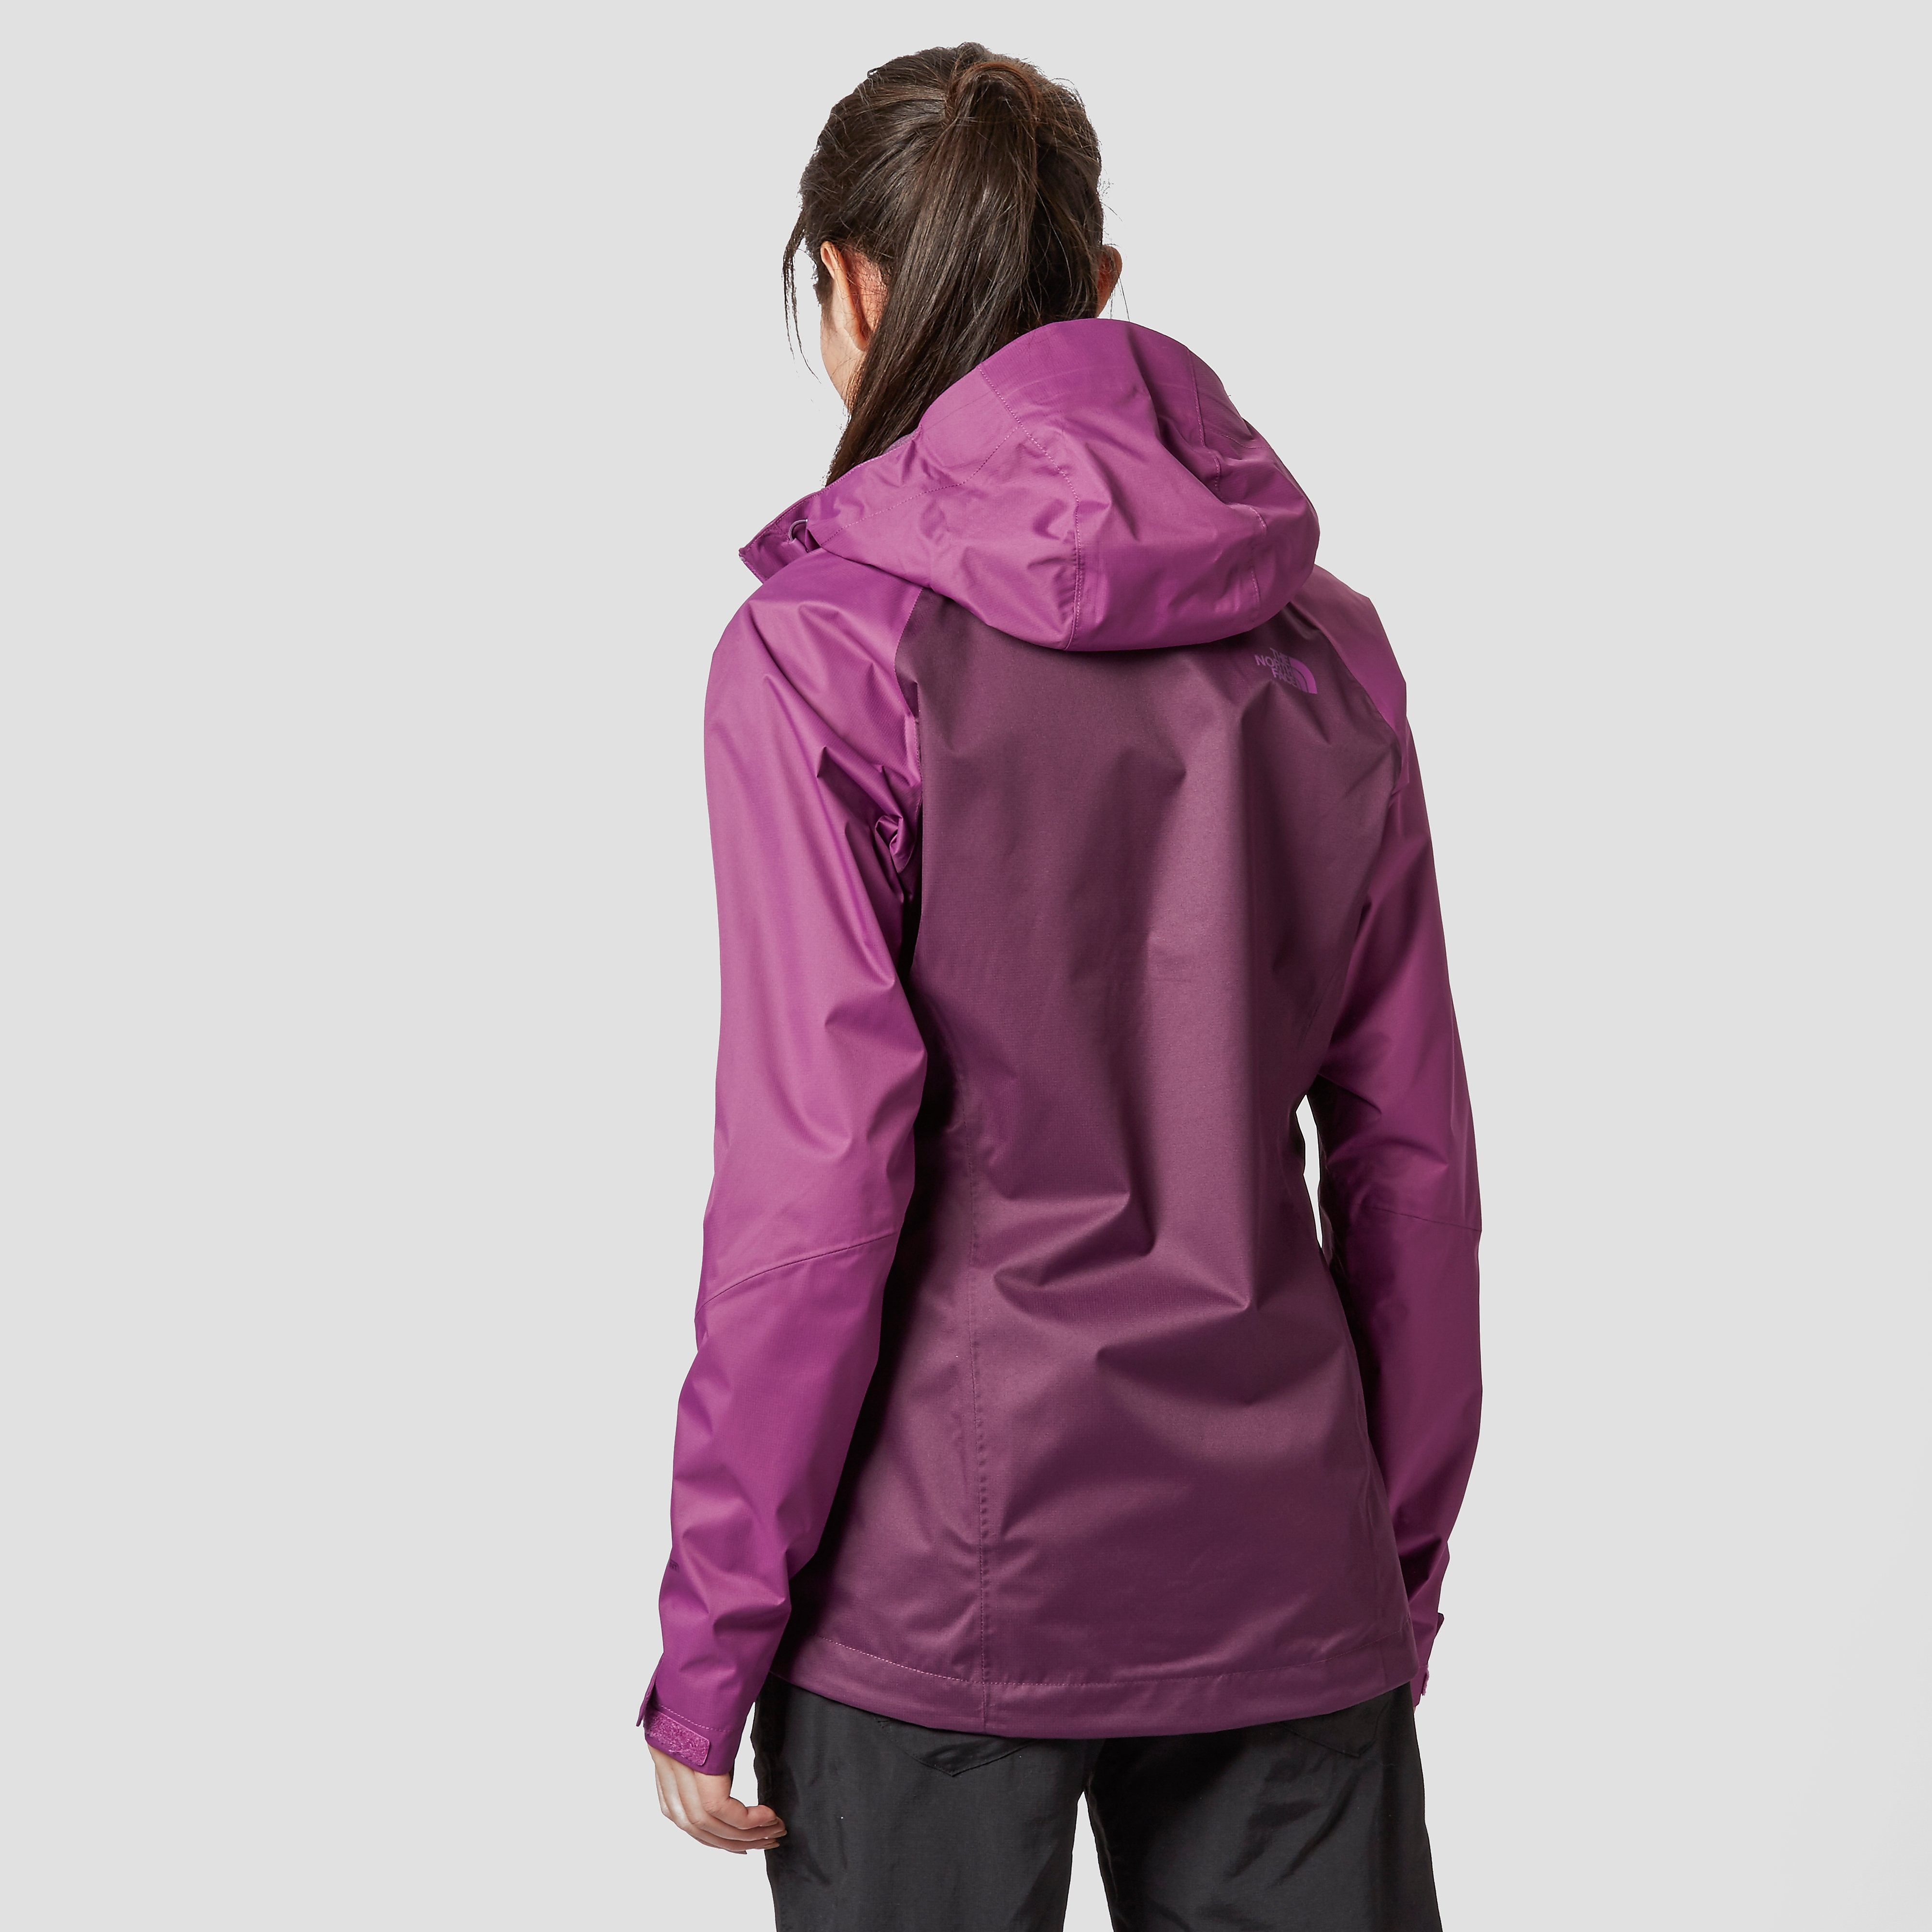 The North Face Sequence DryVent Women's Jacket